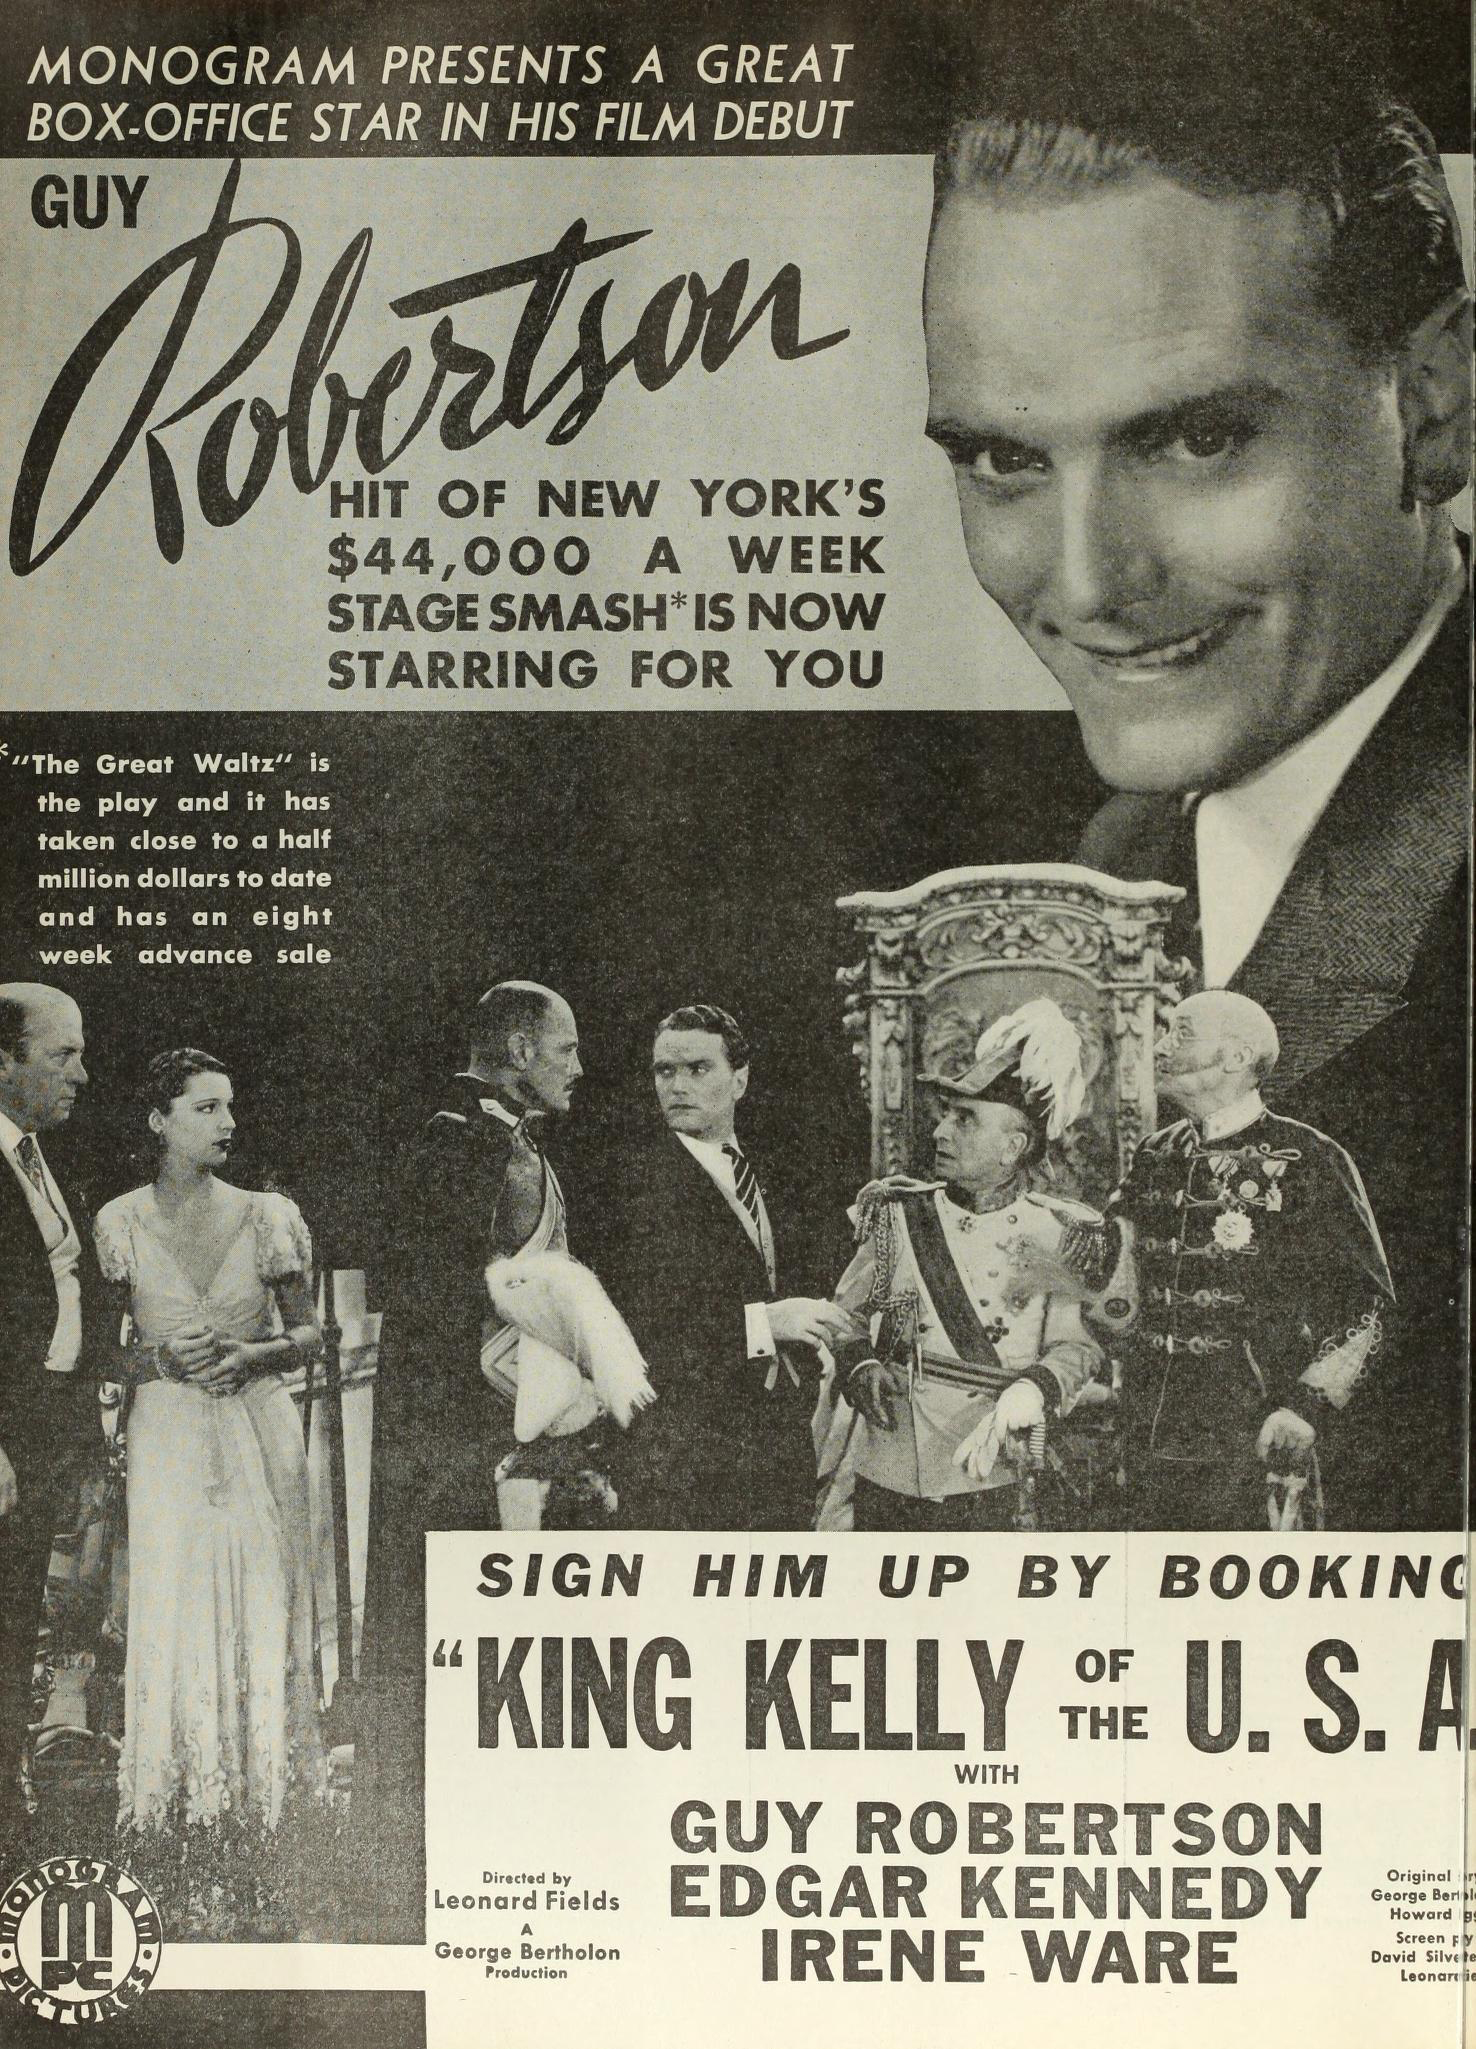 King Kelly of the U.S.A.